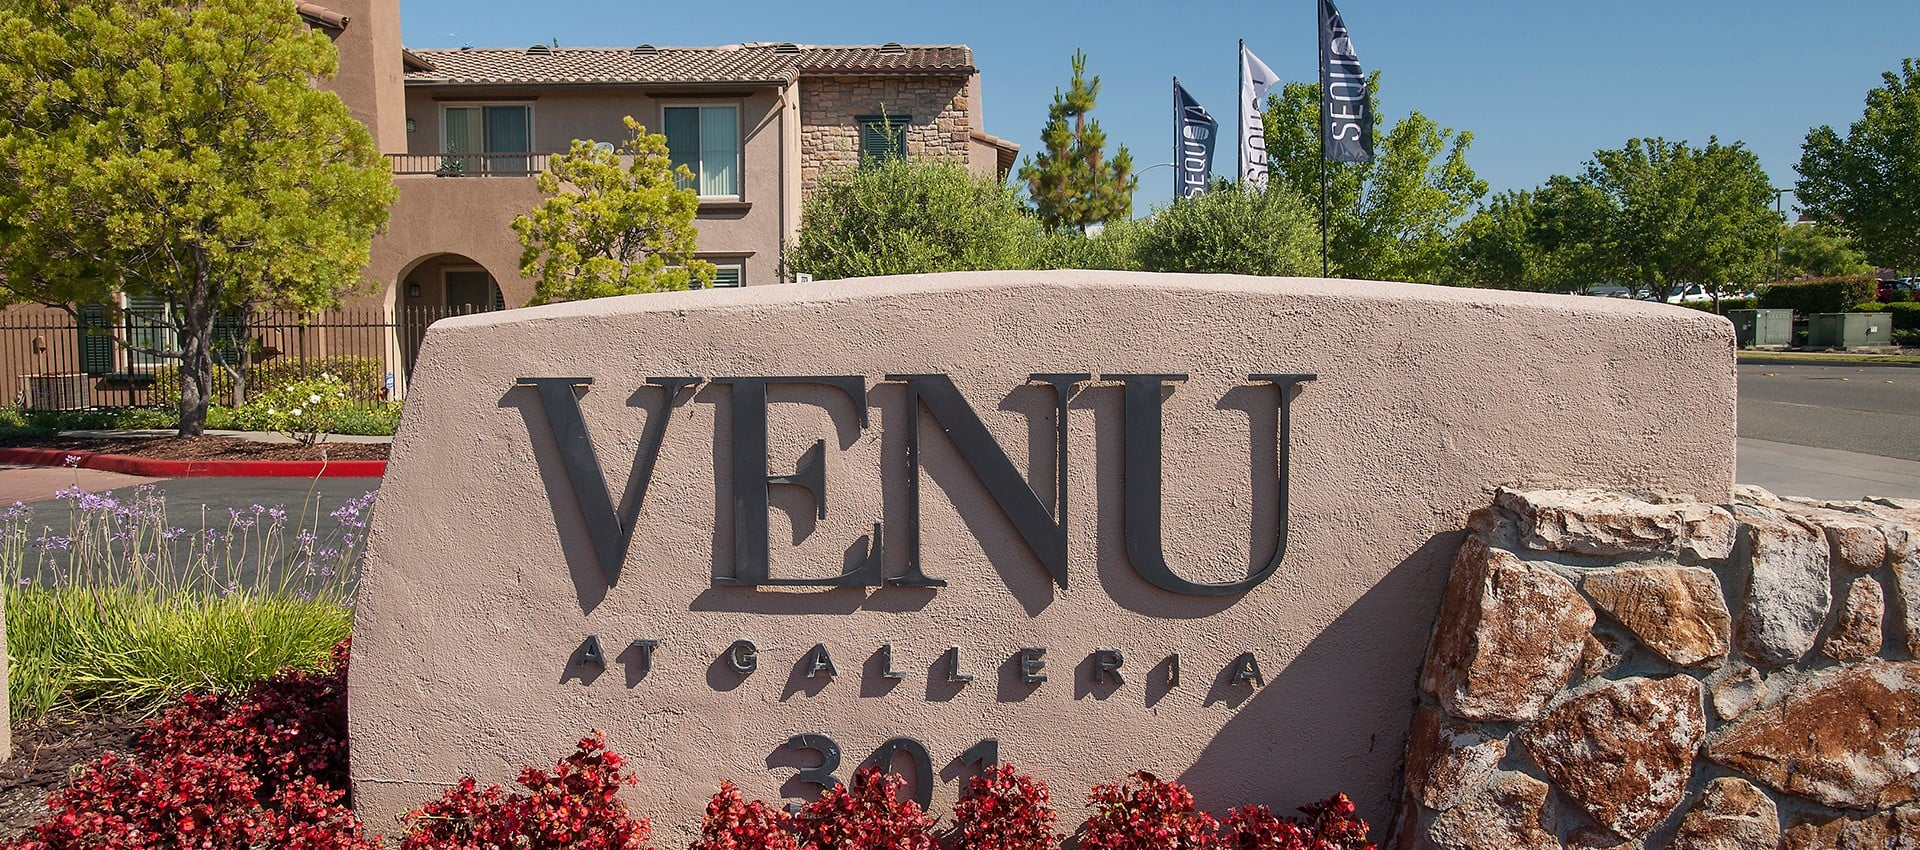 Sign at Venu at Galleria Condominium Rentals in Roseville, California